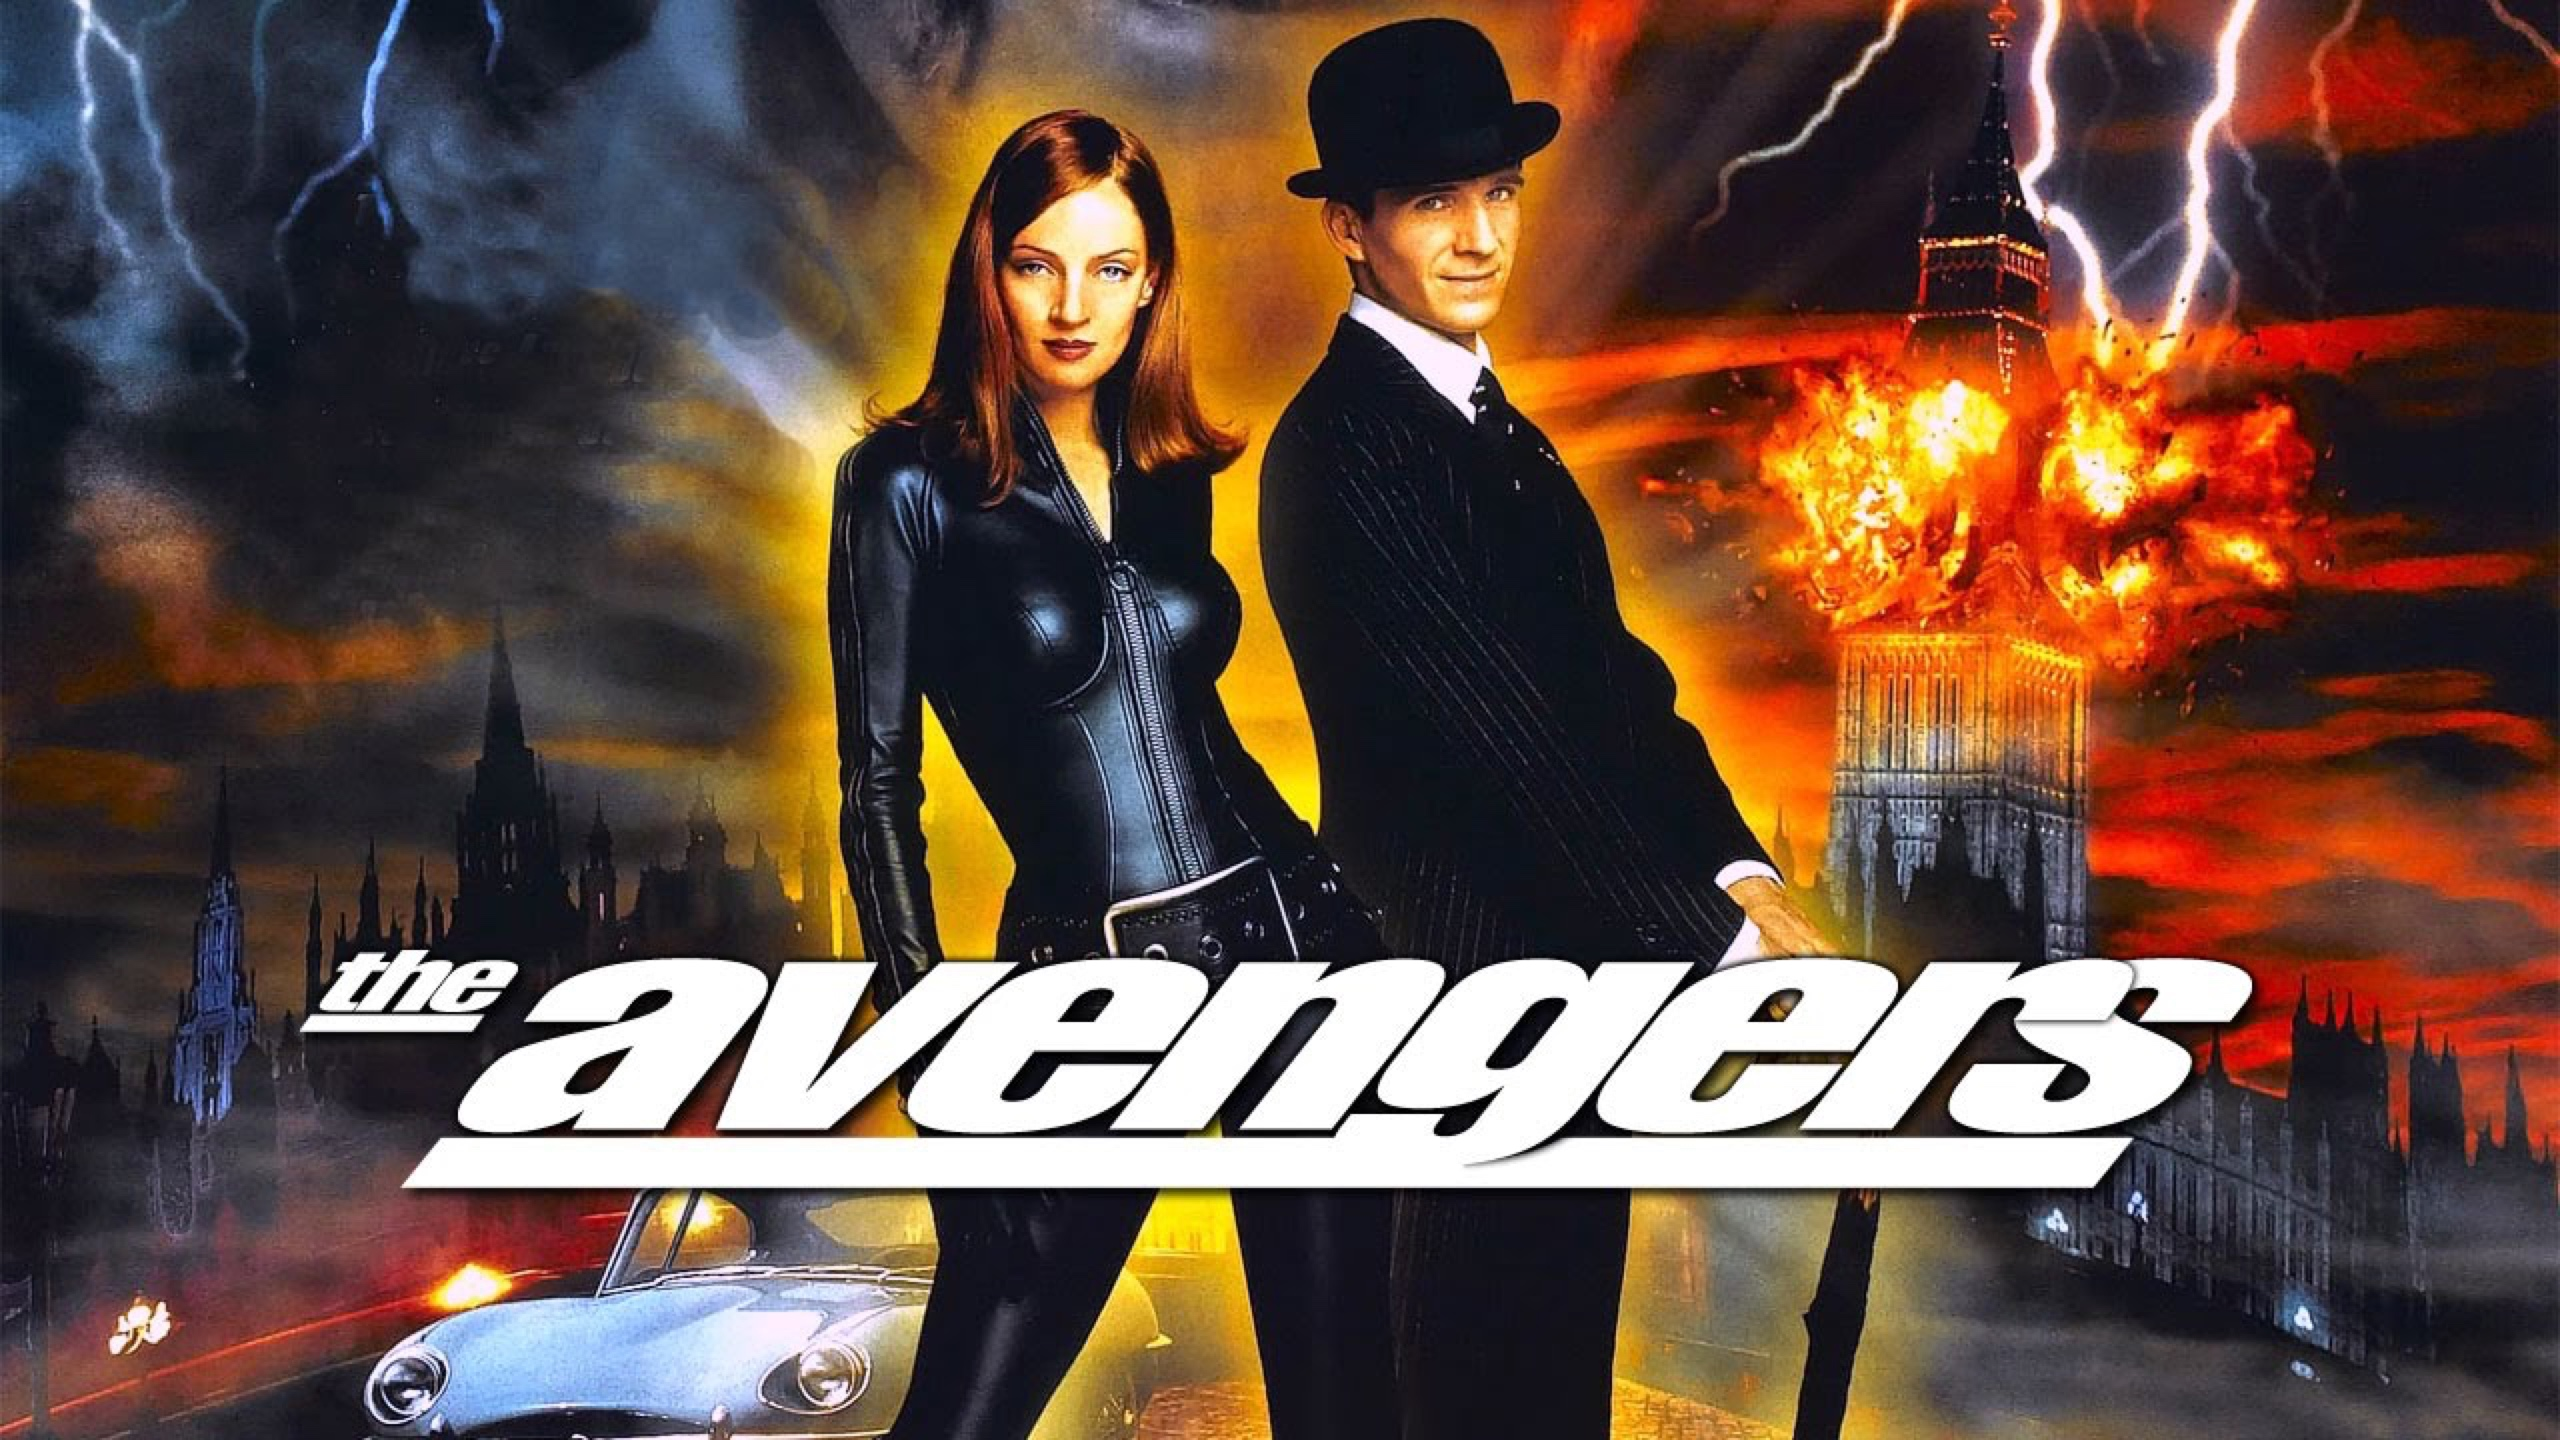 1998 the avengers oral history - The Avengers